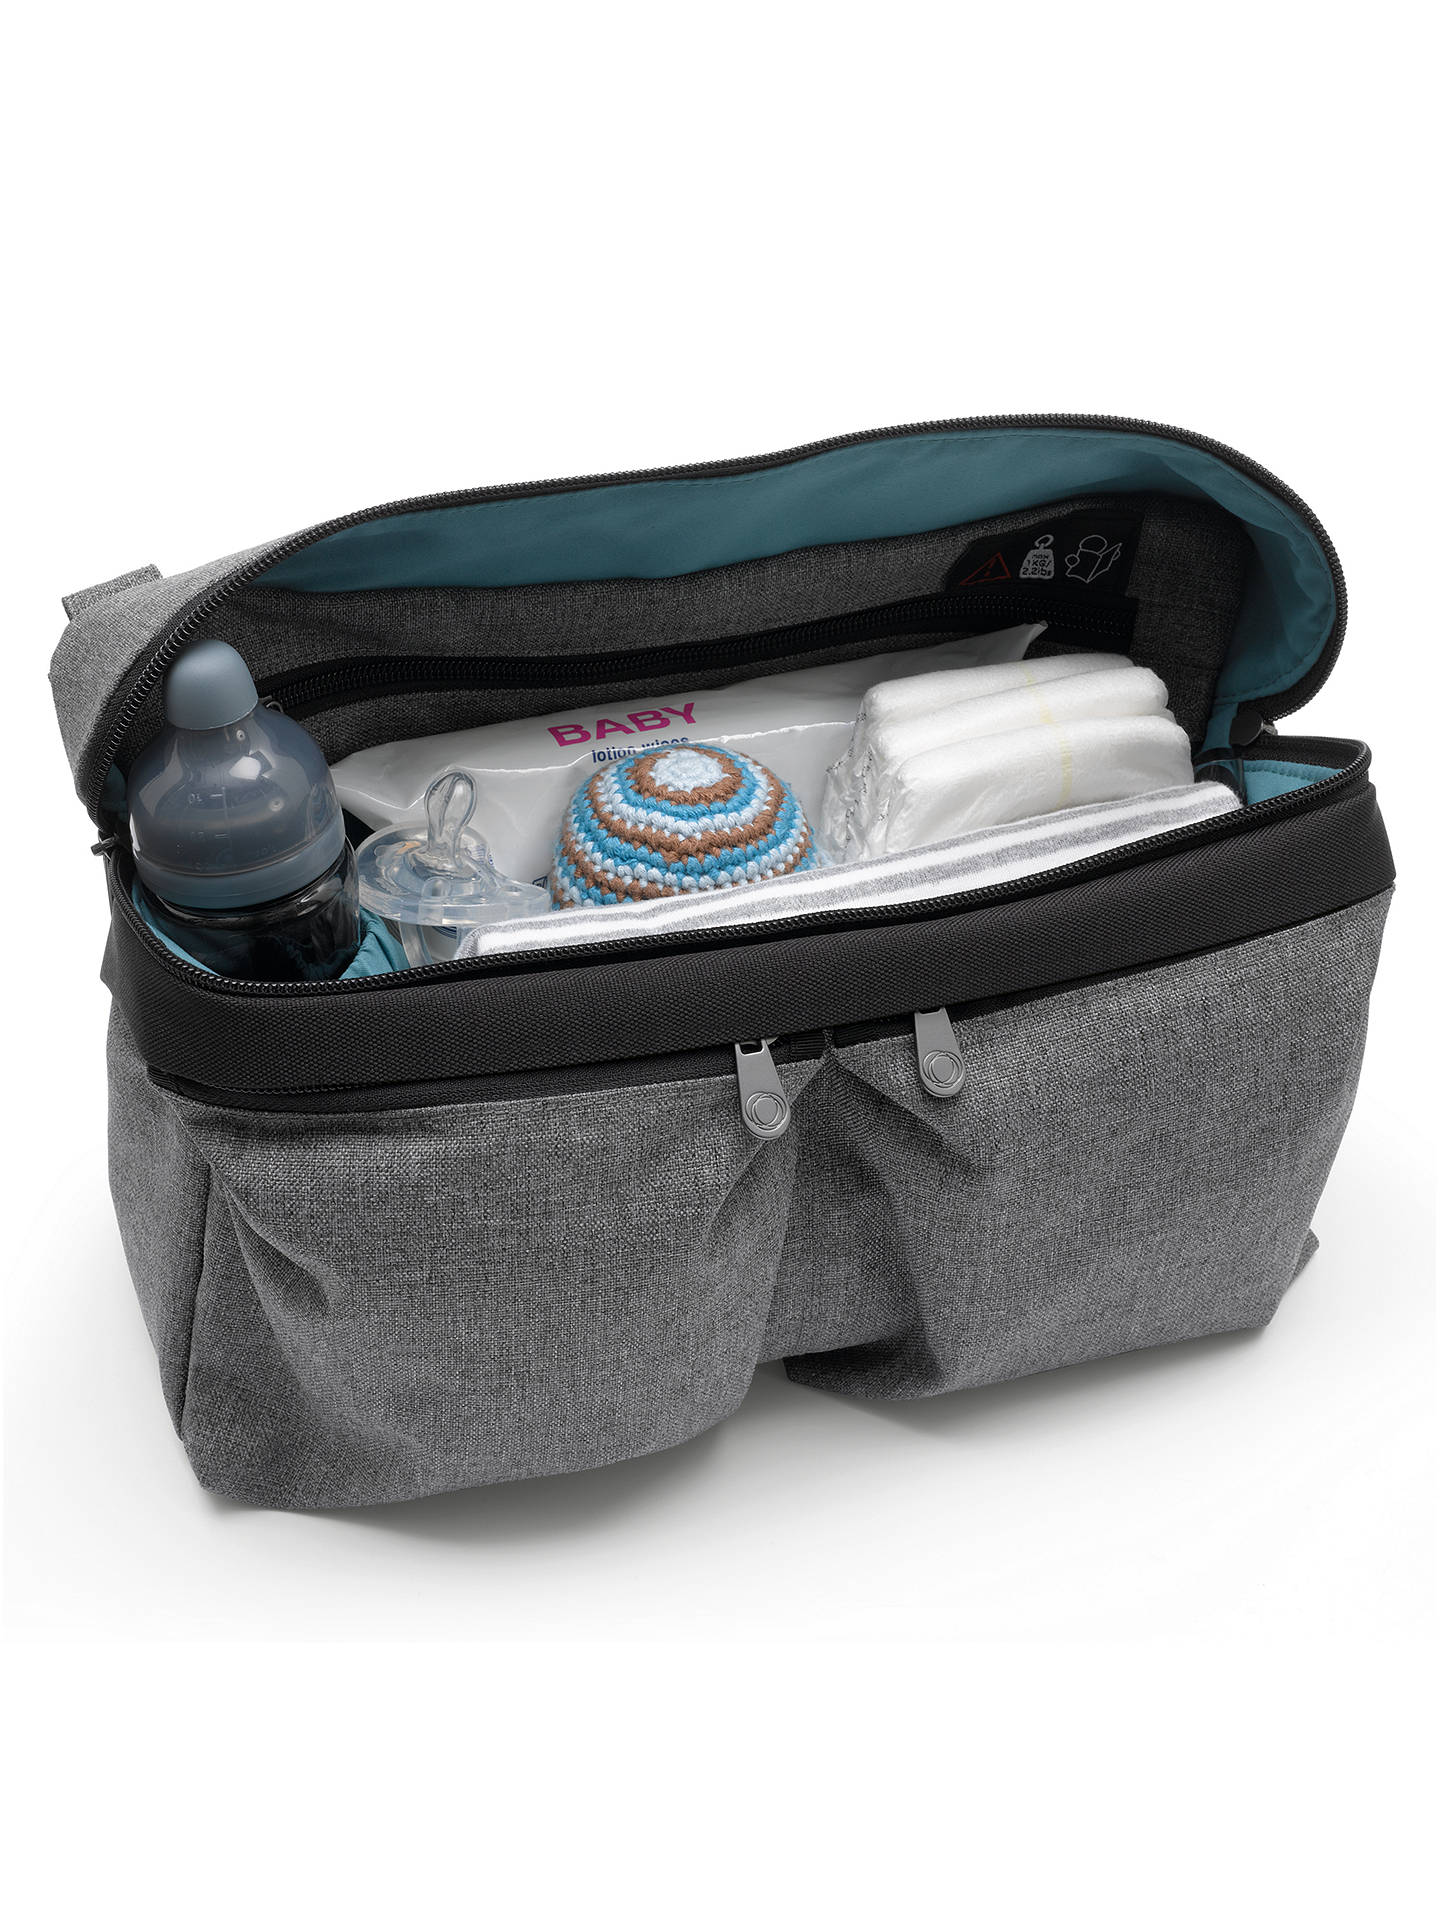 BuyBugaboo Changing Bag Organiser, Grey Online at johnlewis.com